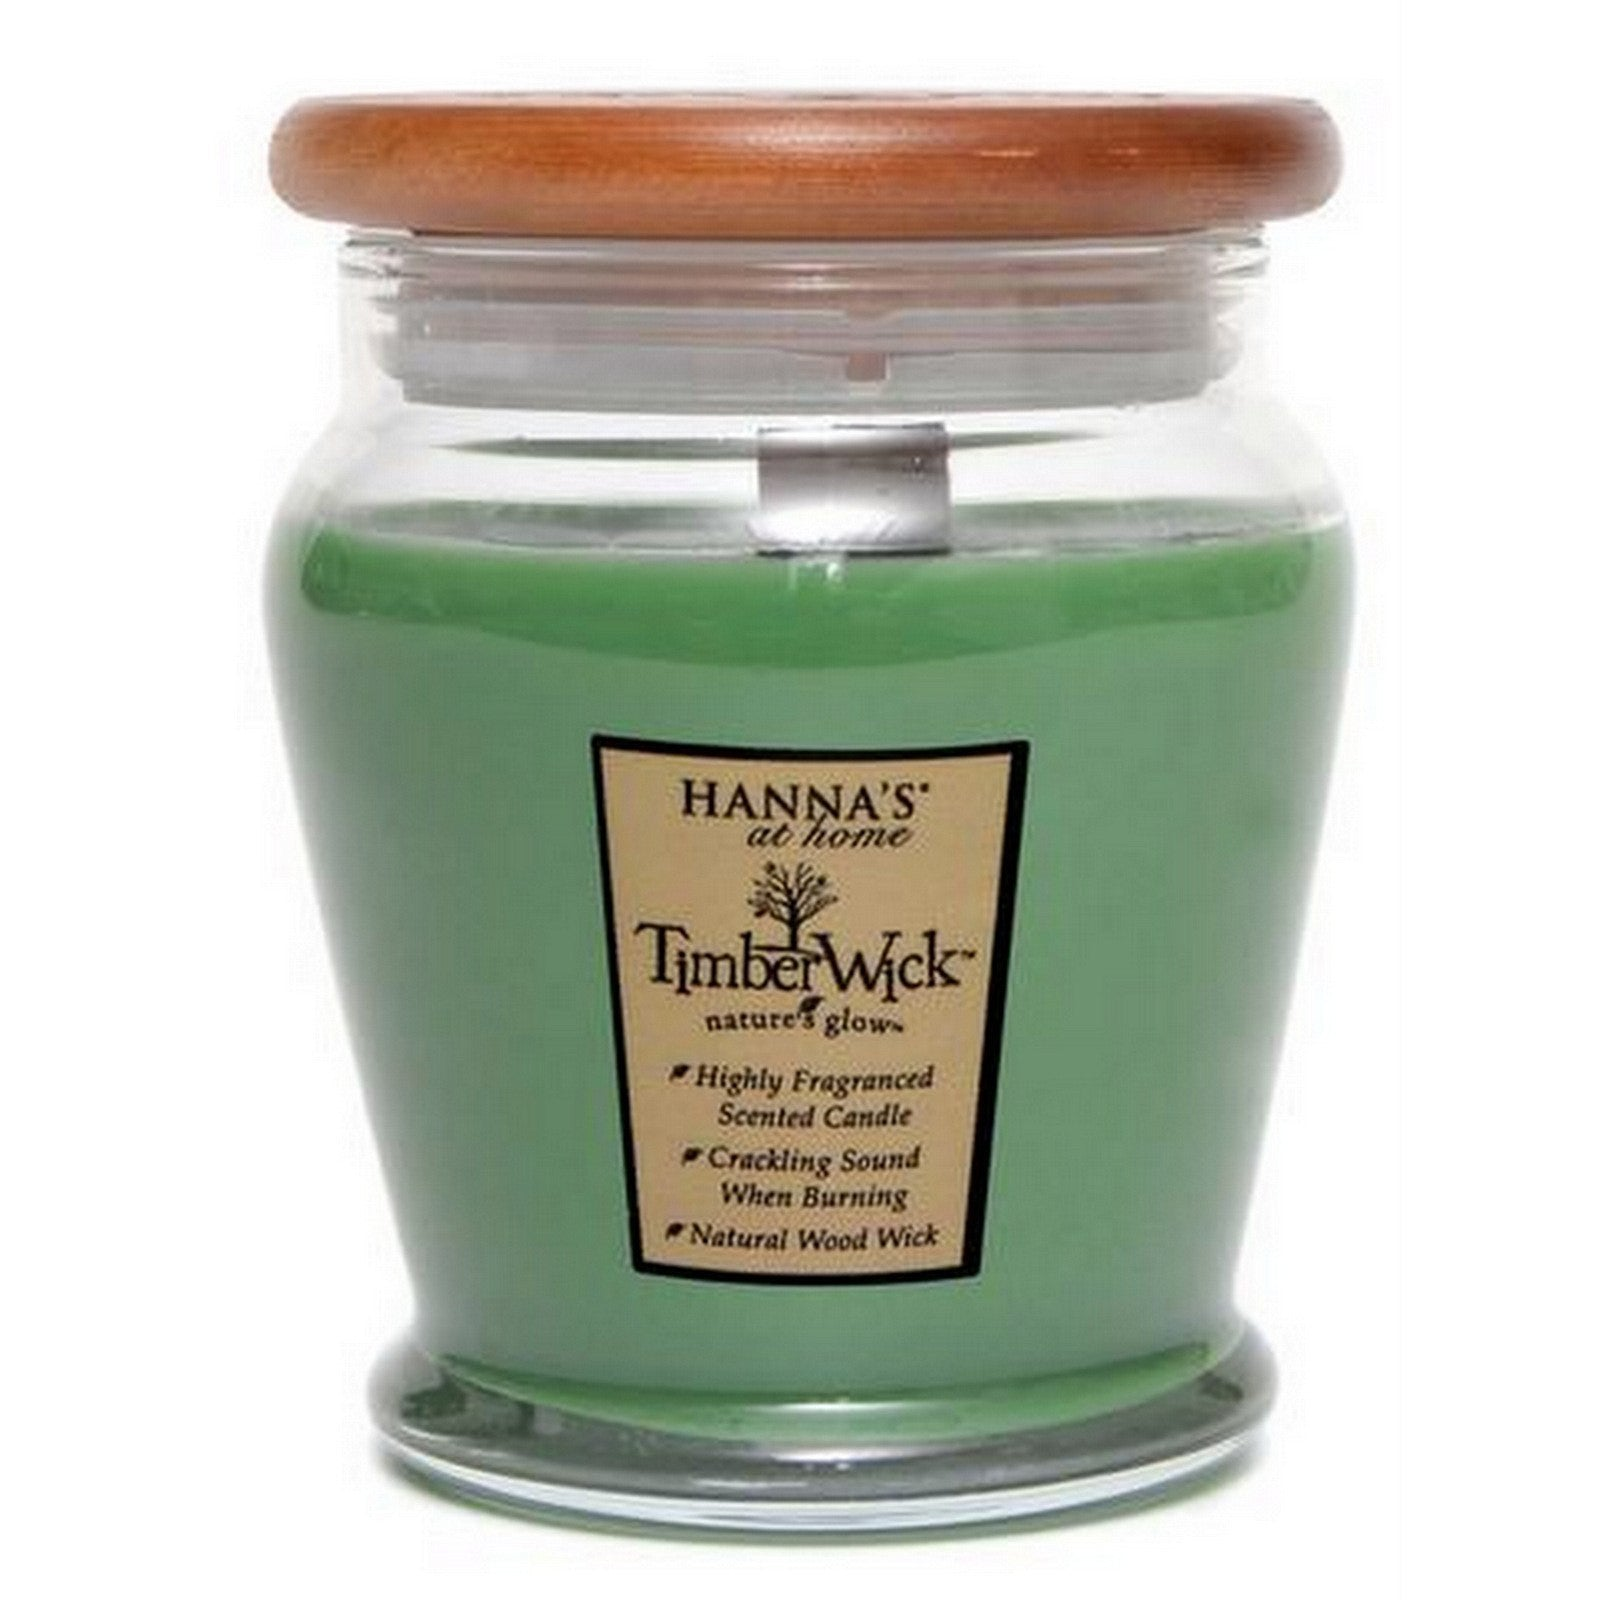 Timberwick Pine Meadow Scented Wax Candle - Candlemart.com